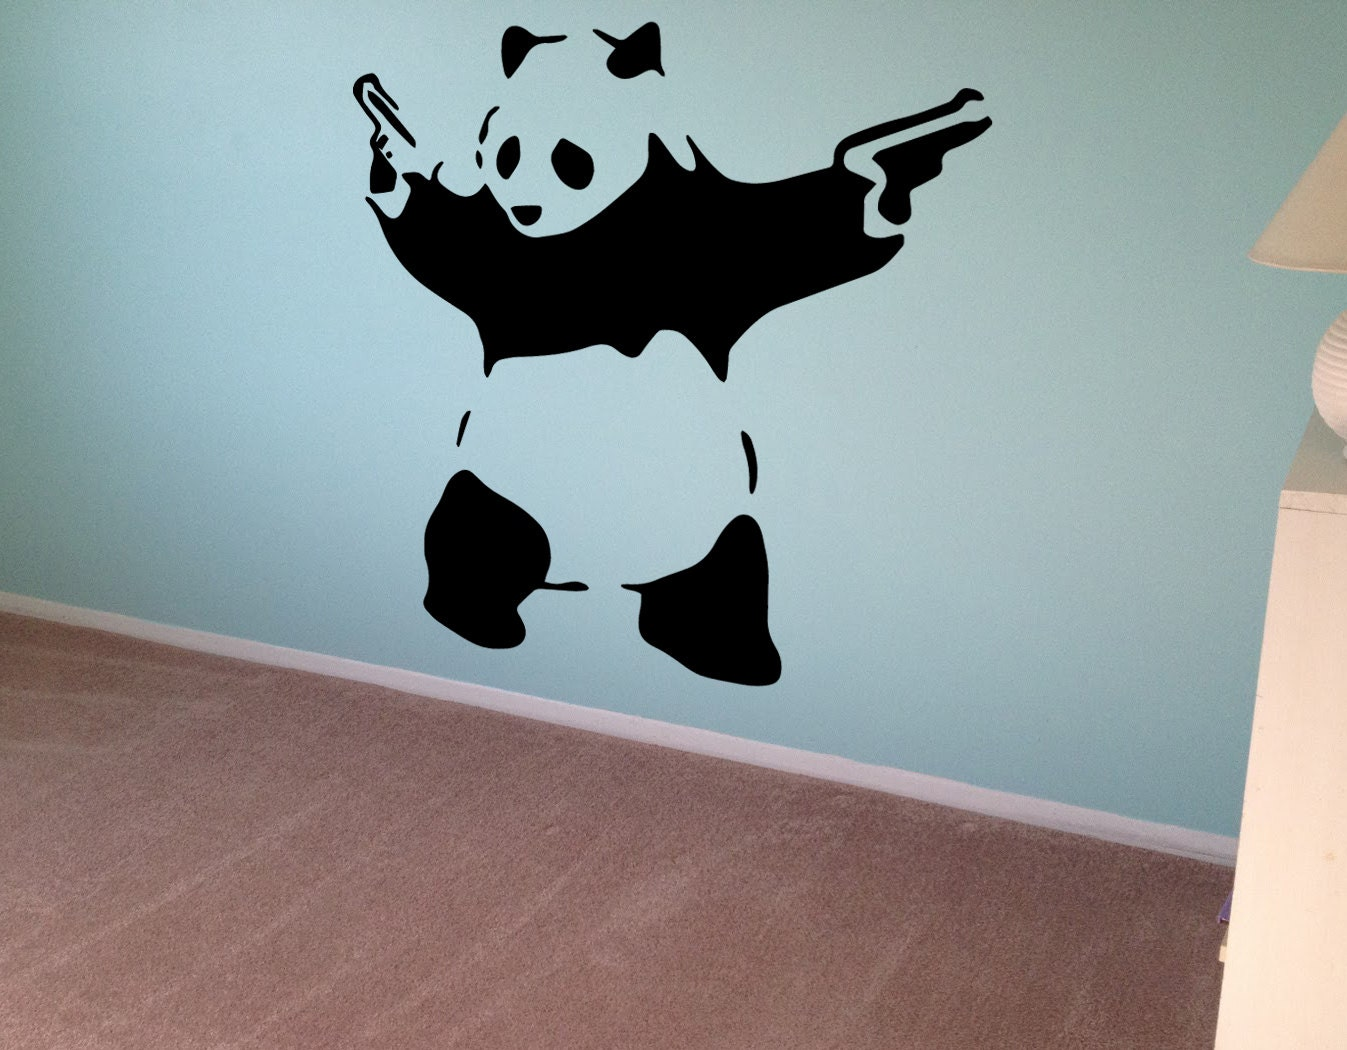 Banksy Wall Decal Panda Guns Wall Art Wall Sticker Vinyl - Custom vinyl wall decals graffiti